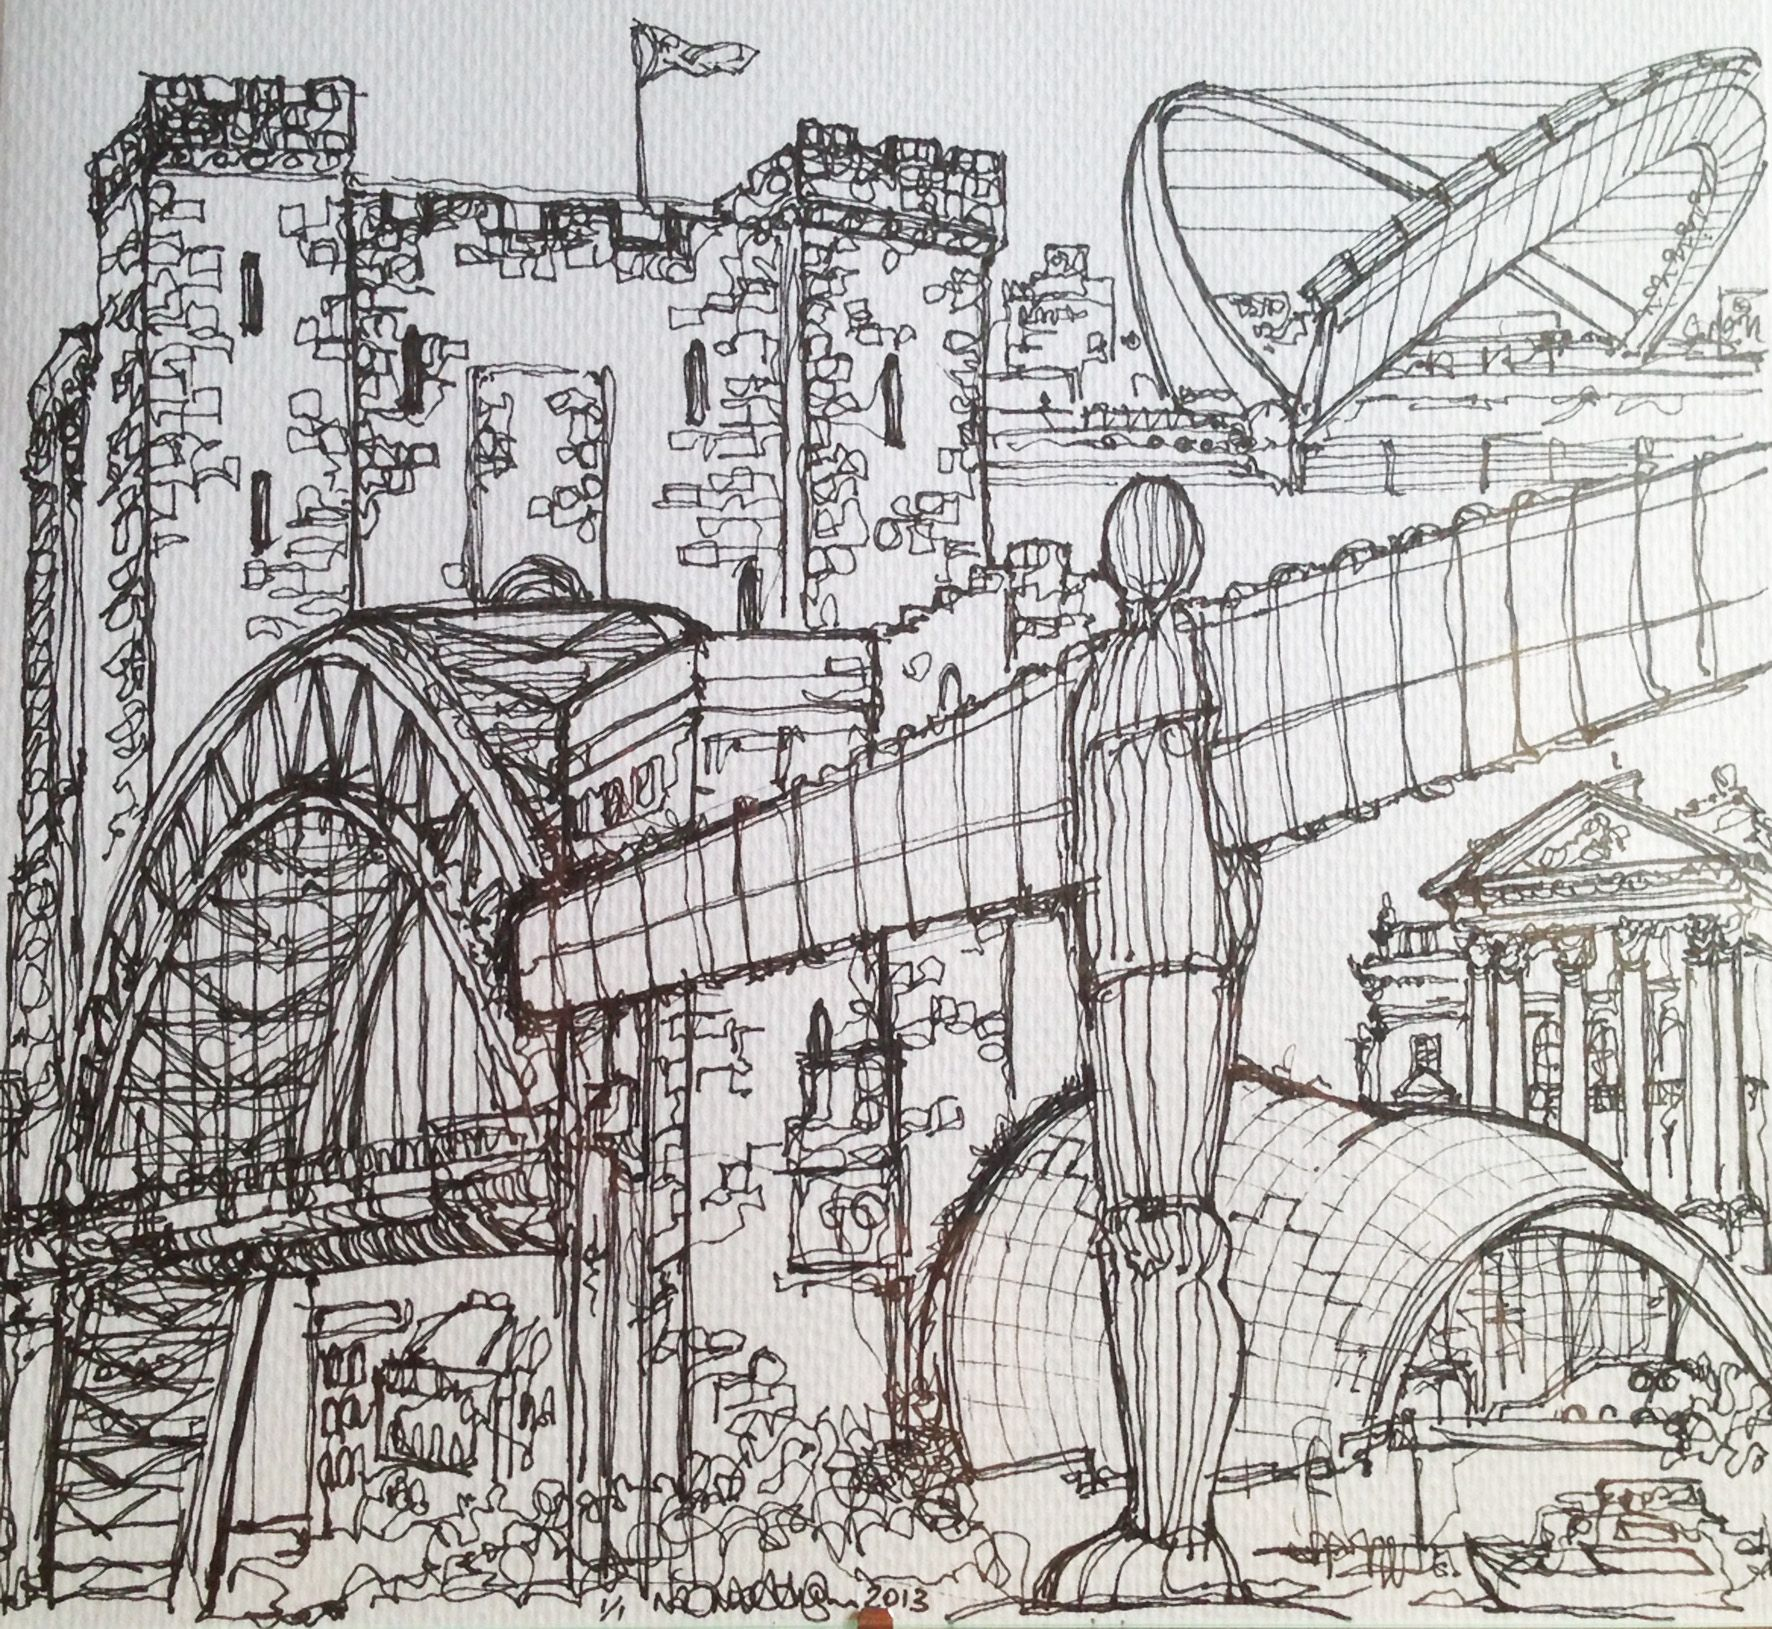 Newcastle Gateshead C Naomi Austin 2013 Sketch Book Newcastle Town Newcastle Gateshead